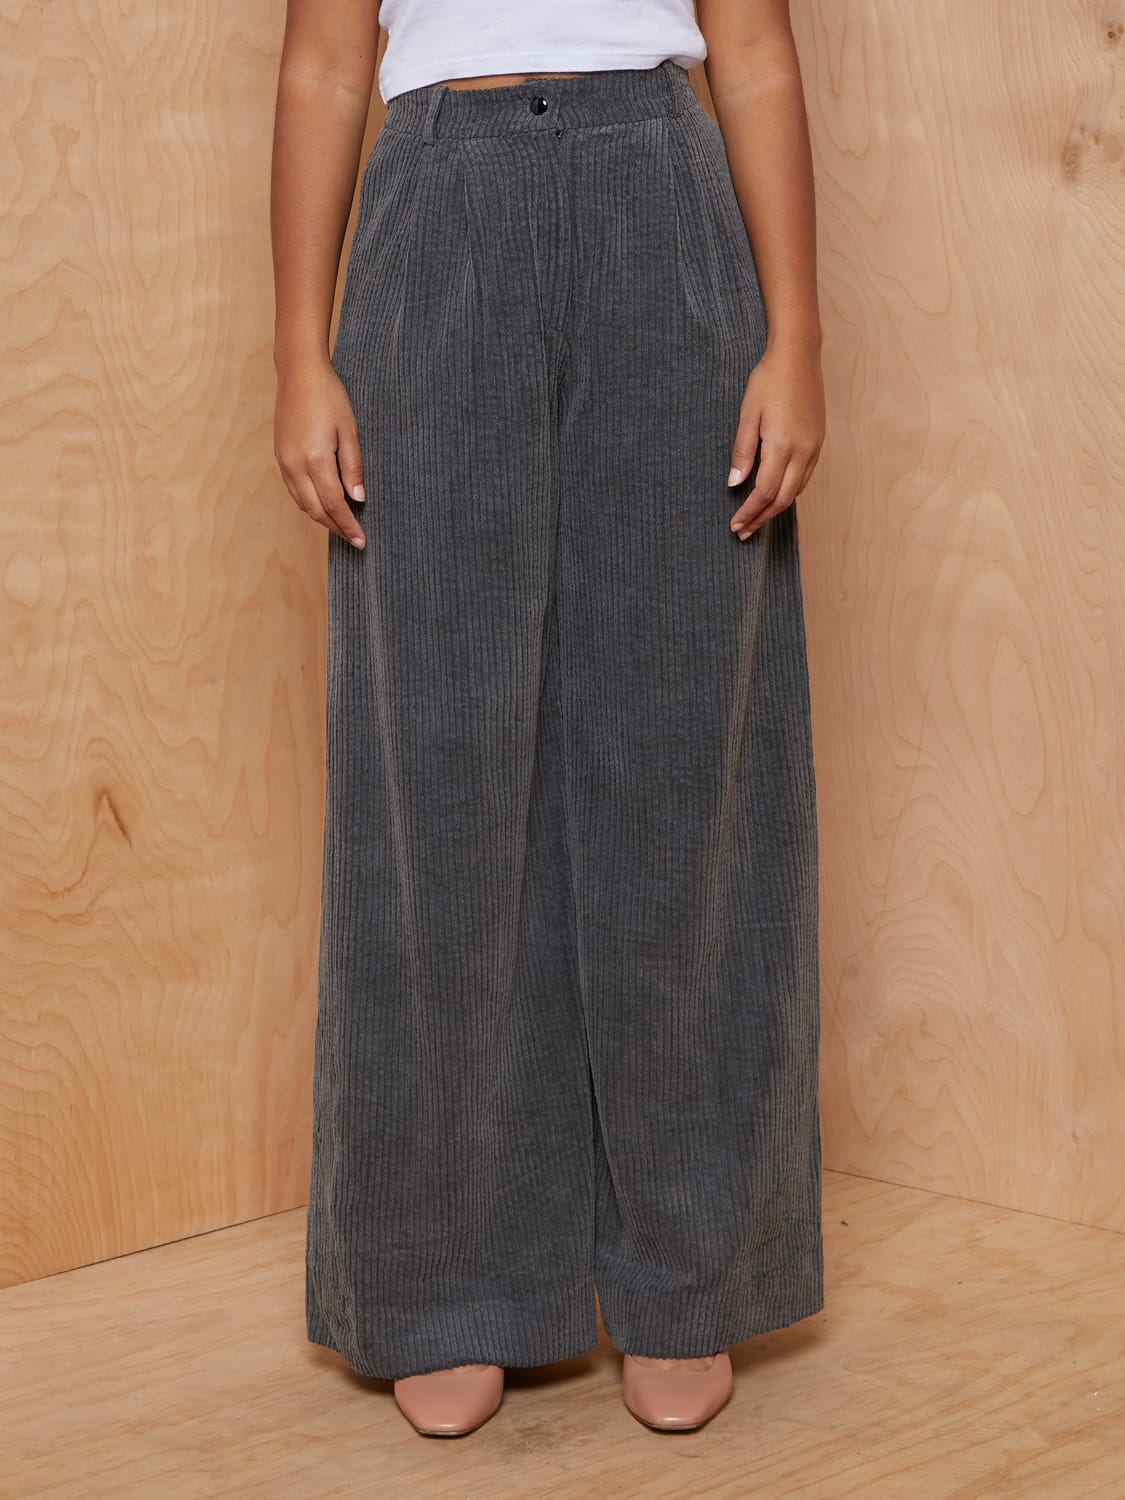 Vintage Charcoal Corduroy Wide Leg Pants